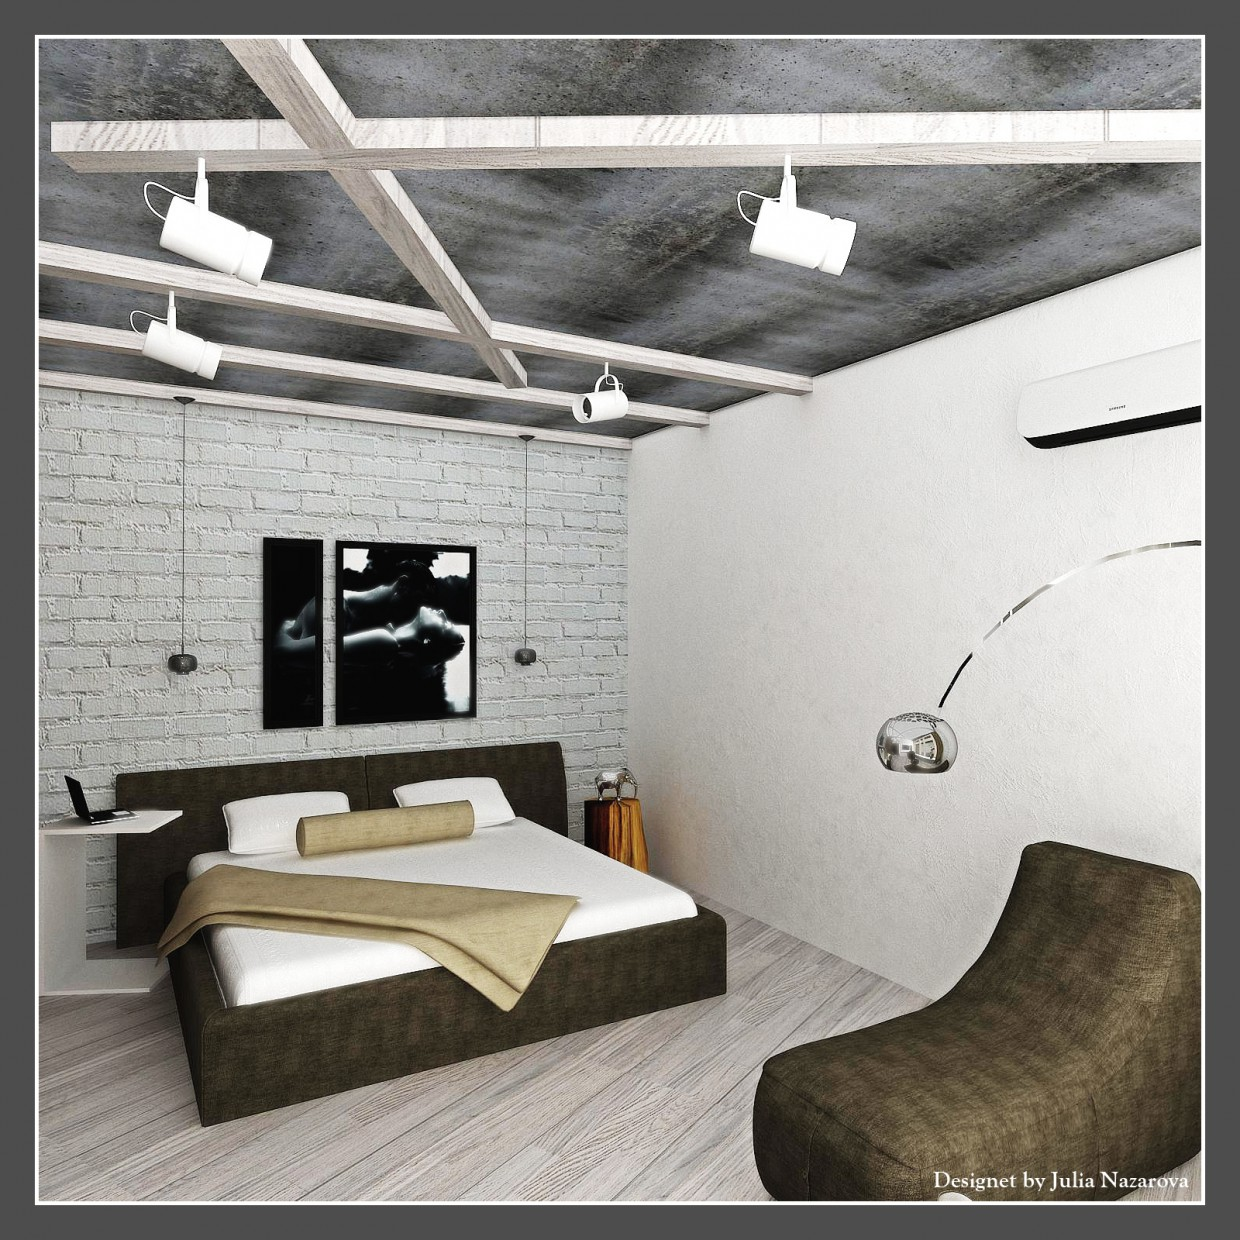 Bedroom + sitting area in 3d max vray 1.5 image